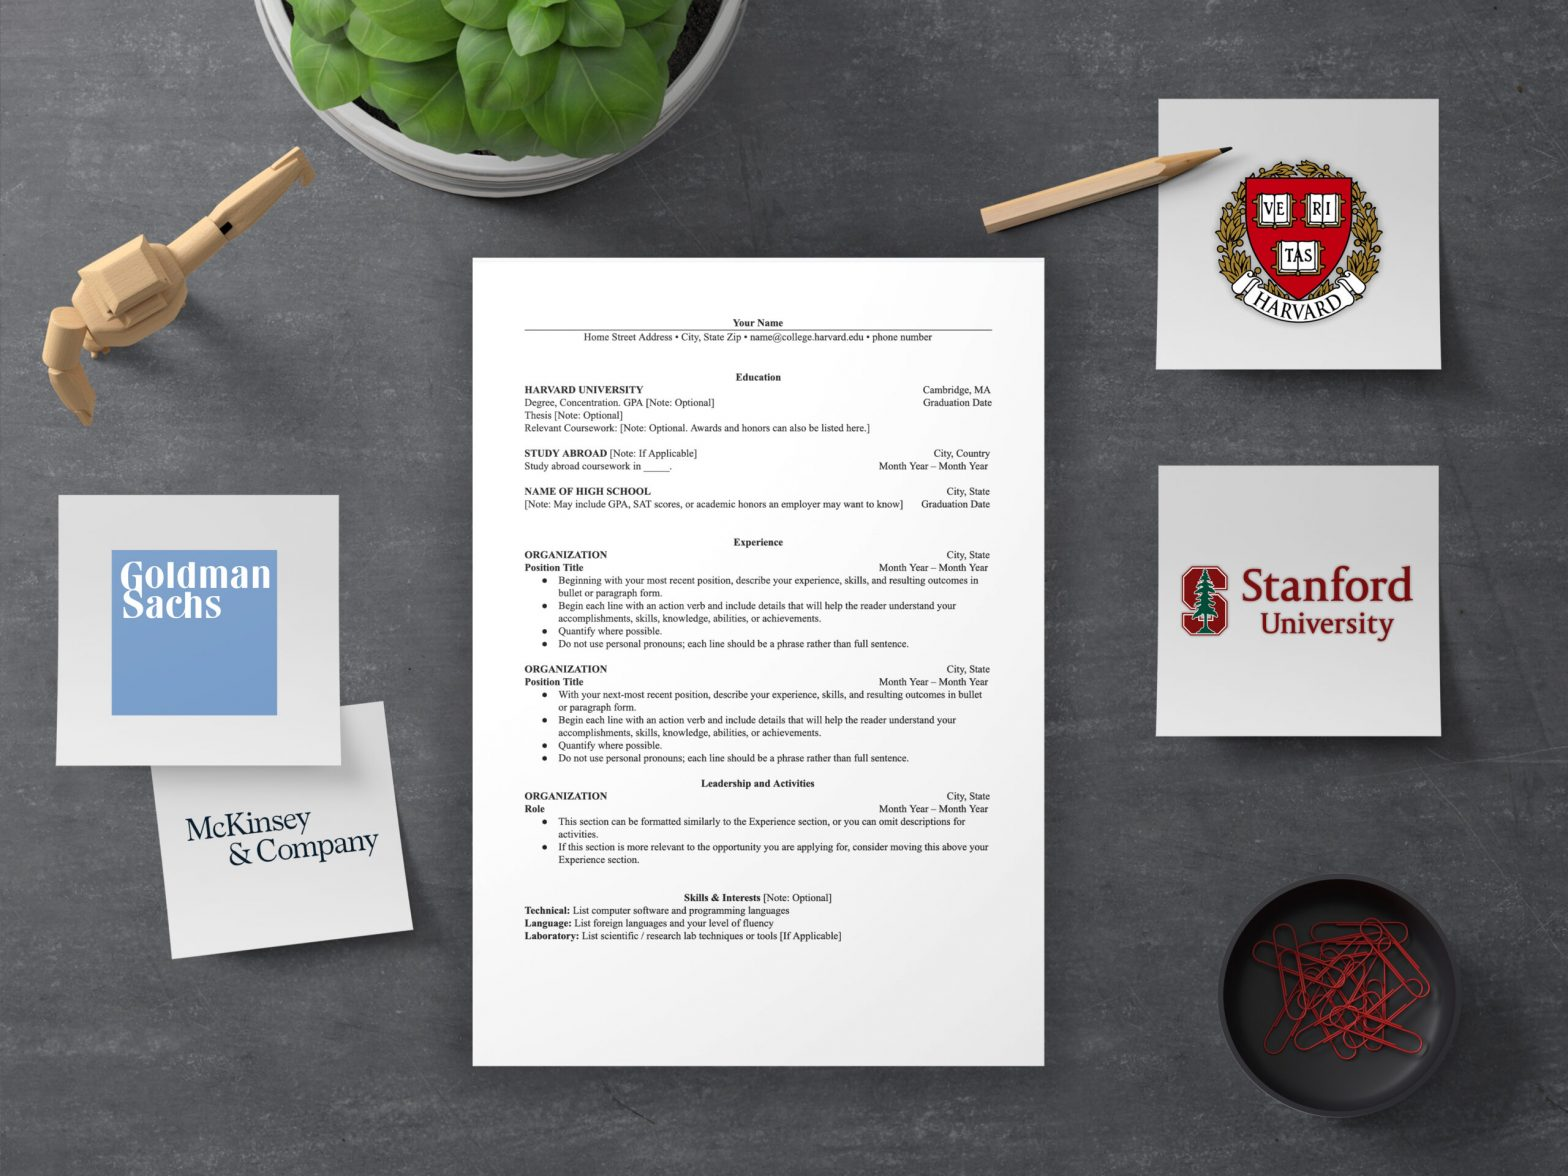 9 Rules of Writing a Professional Resume for an IT Company